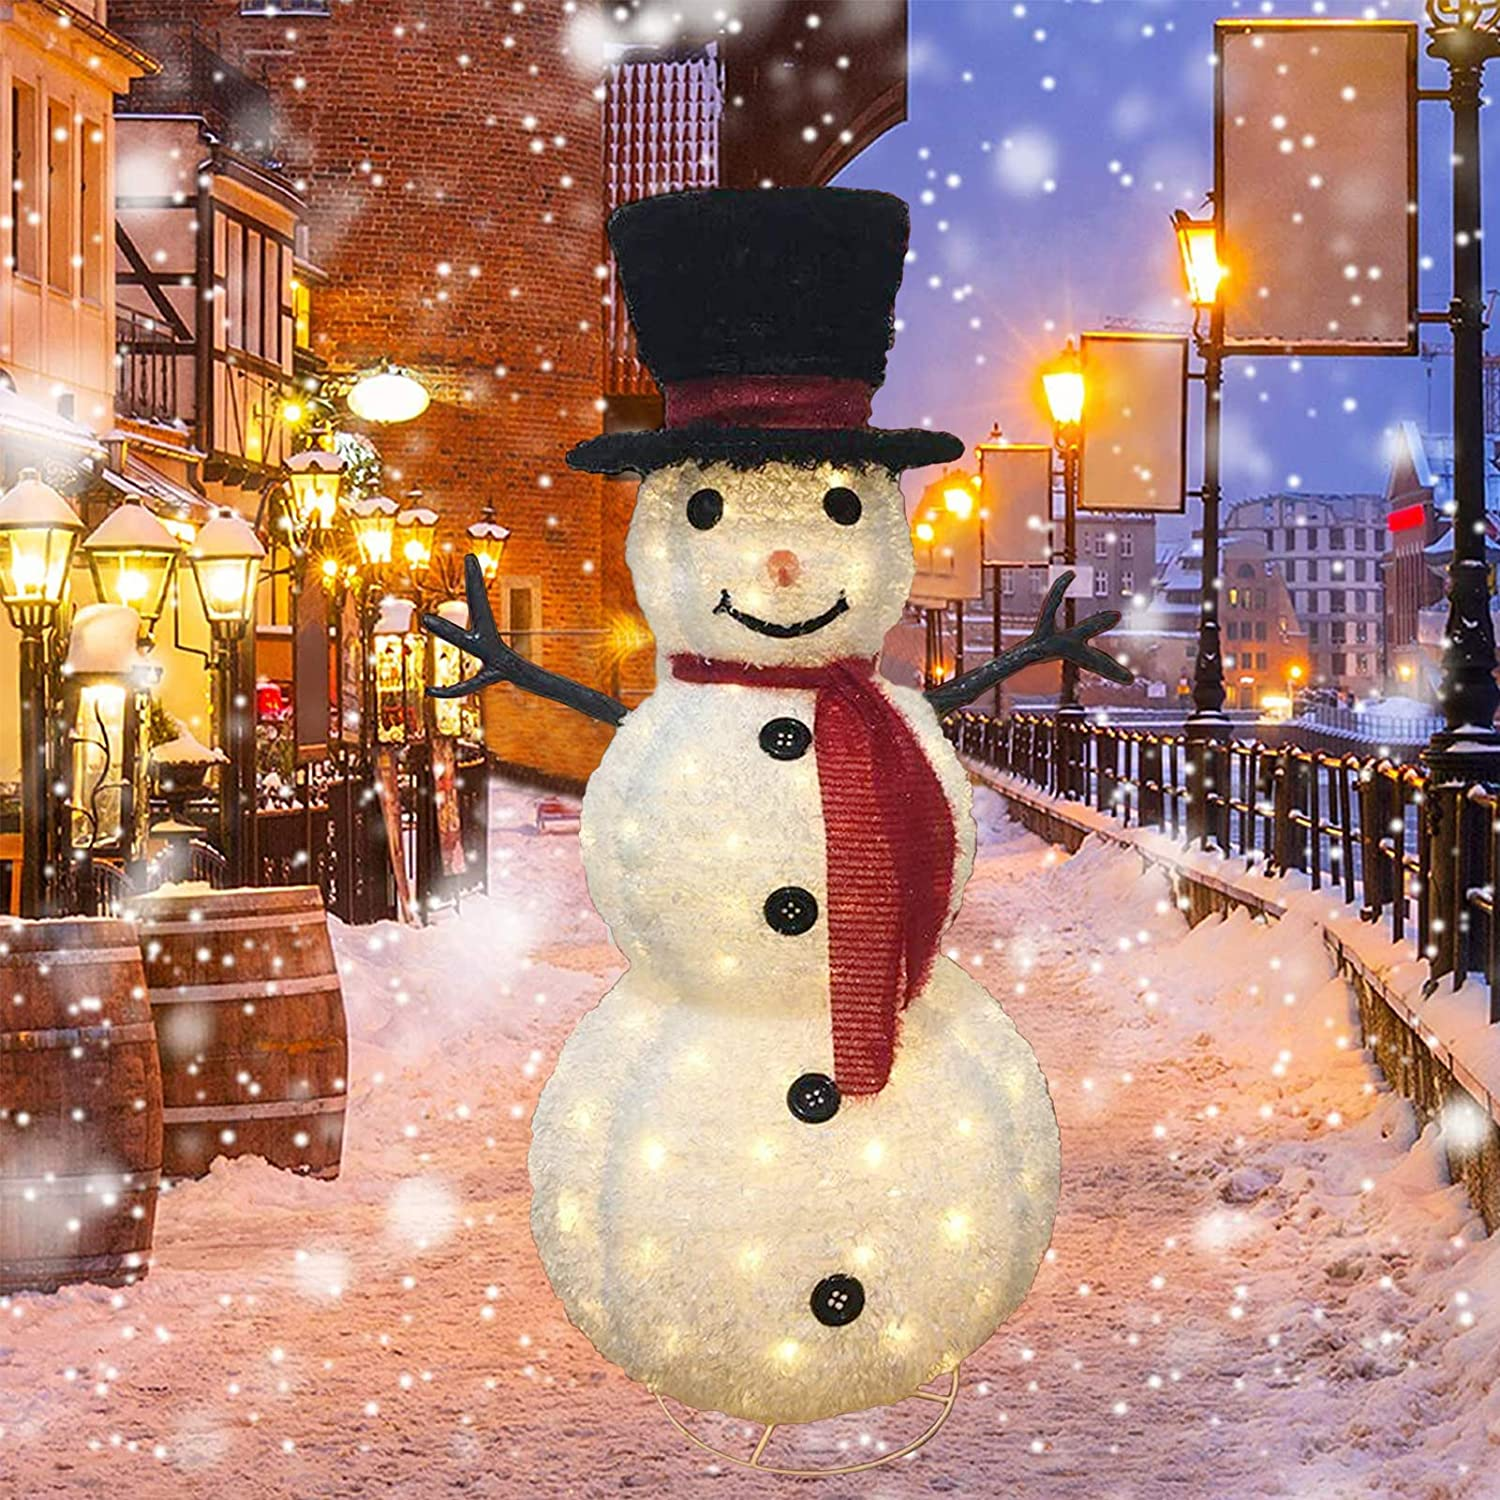 47 Inch Pre Lit Christmas Snowman with Warm White Lights, Perfect Decorations for Christmas Party Indoor Outdoor Lawn Yard Garden Xmas Holiday Yard Display Decor